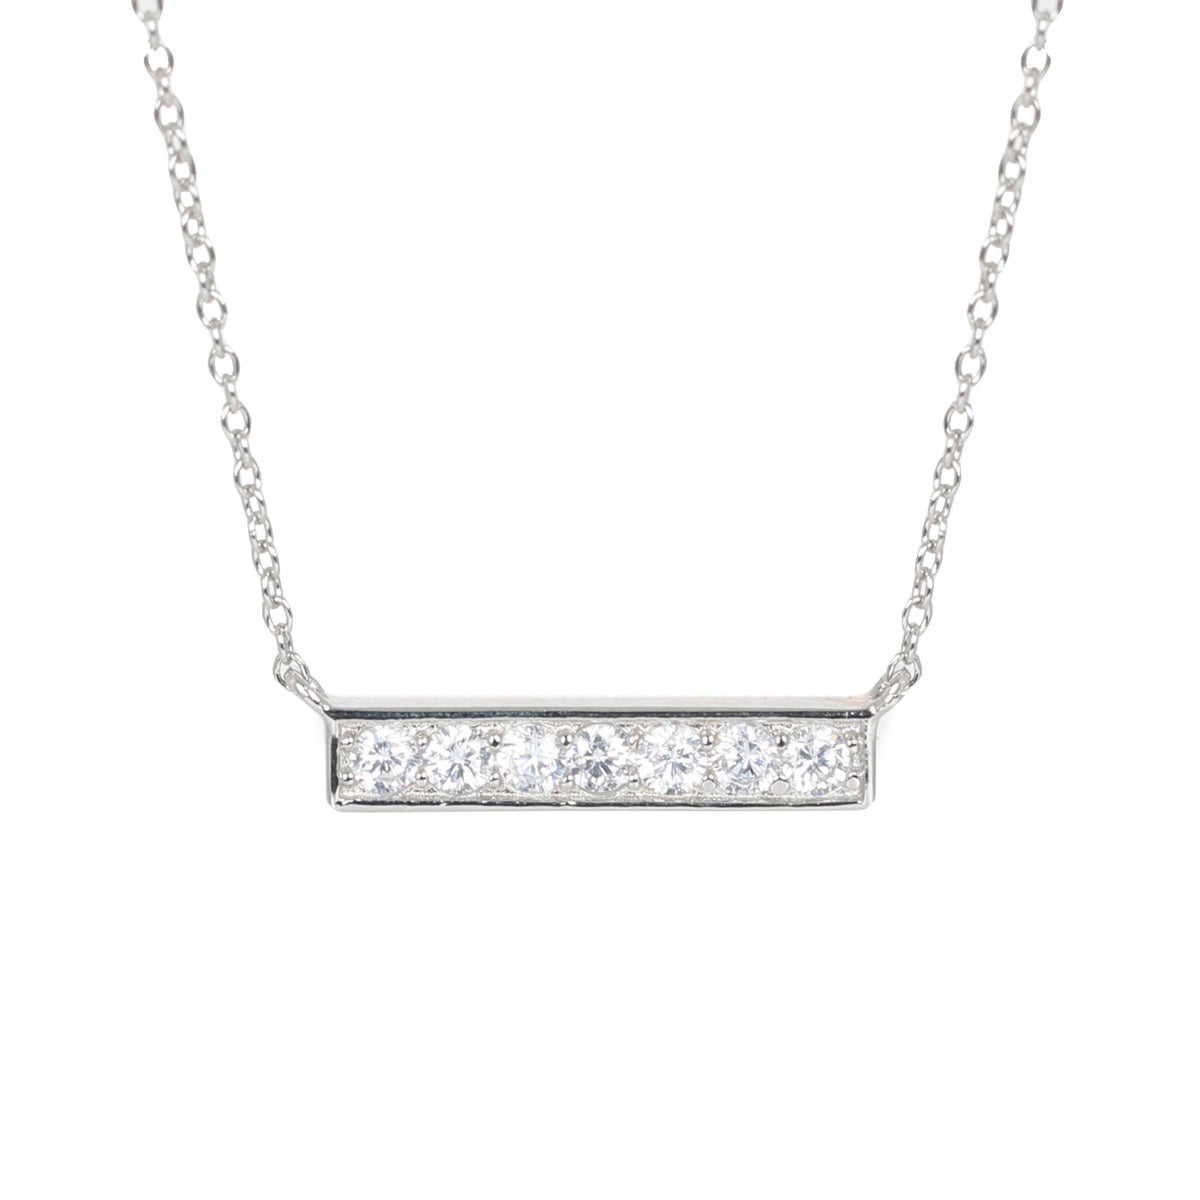 Silver Ingot necklace